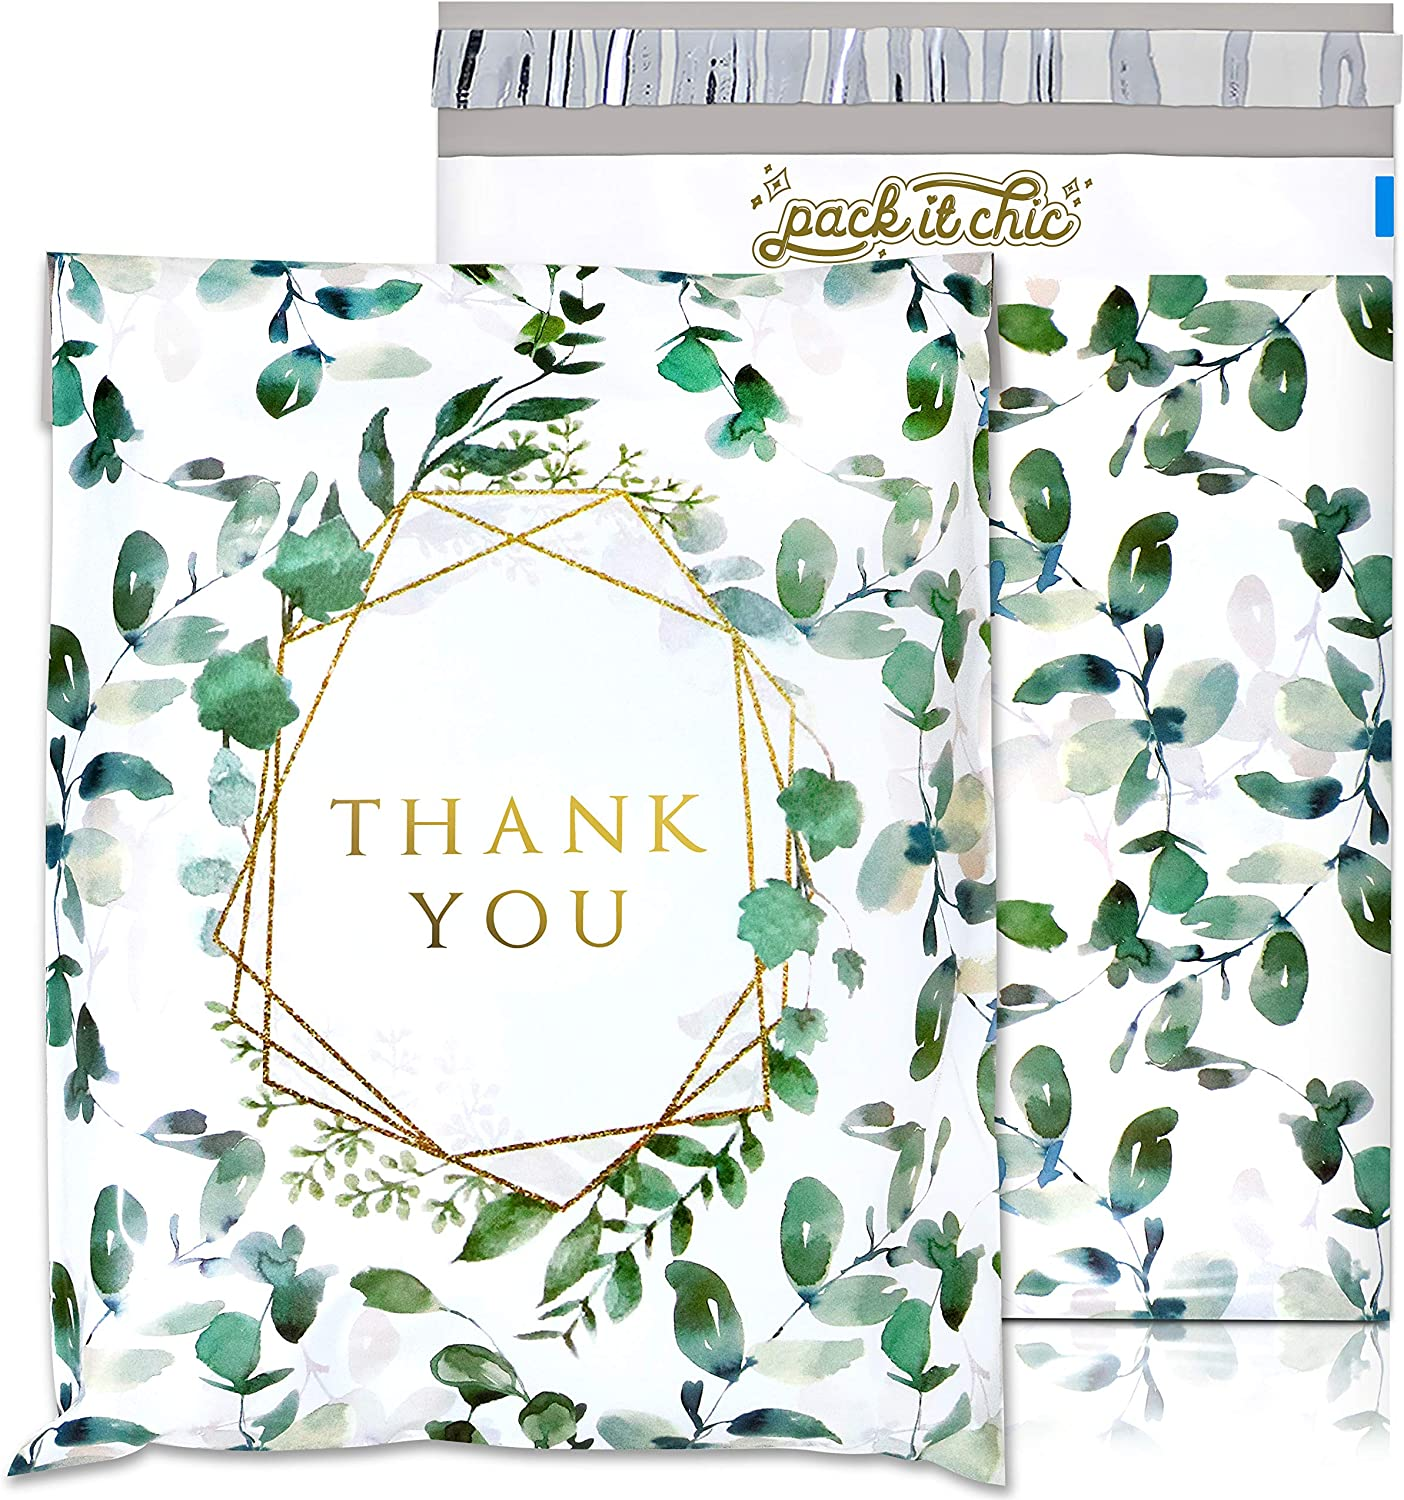 Pack It Chic - 10X13 (100 Pack) Geometric Leaves Pattern - Thank You Poly Mailer Envelope Plastic Custom Mailing & Shipping Bags - Self Seal (More Designs Available)